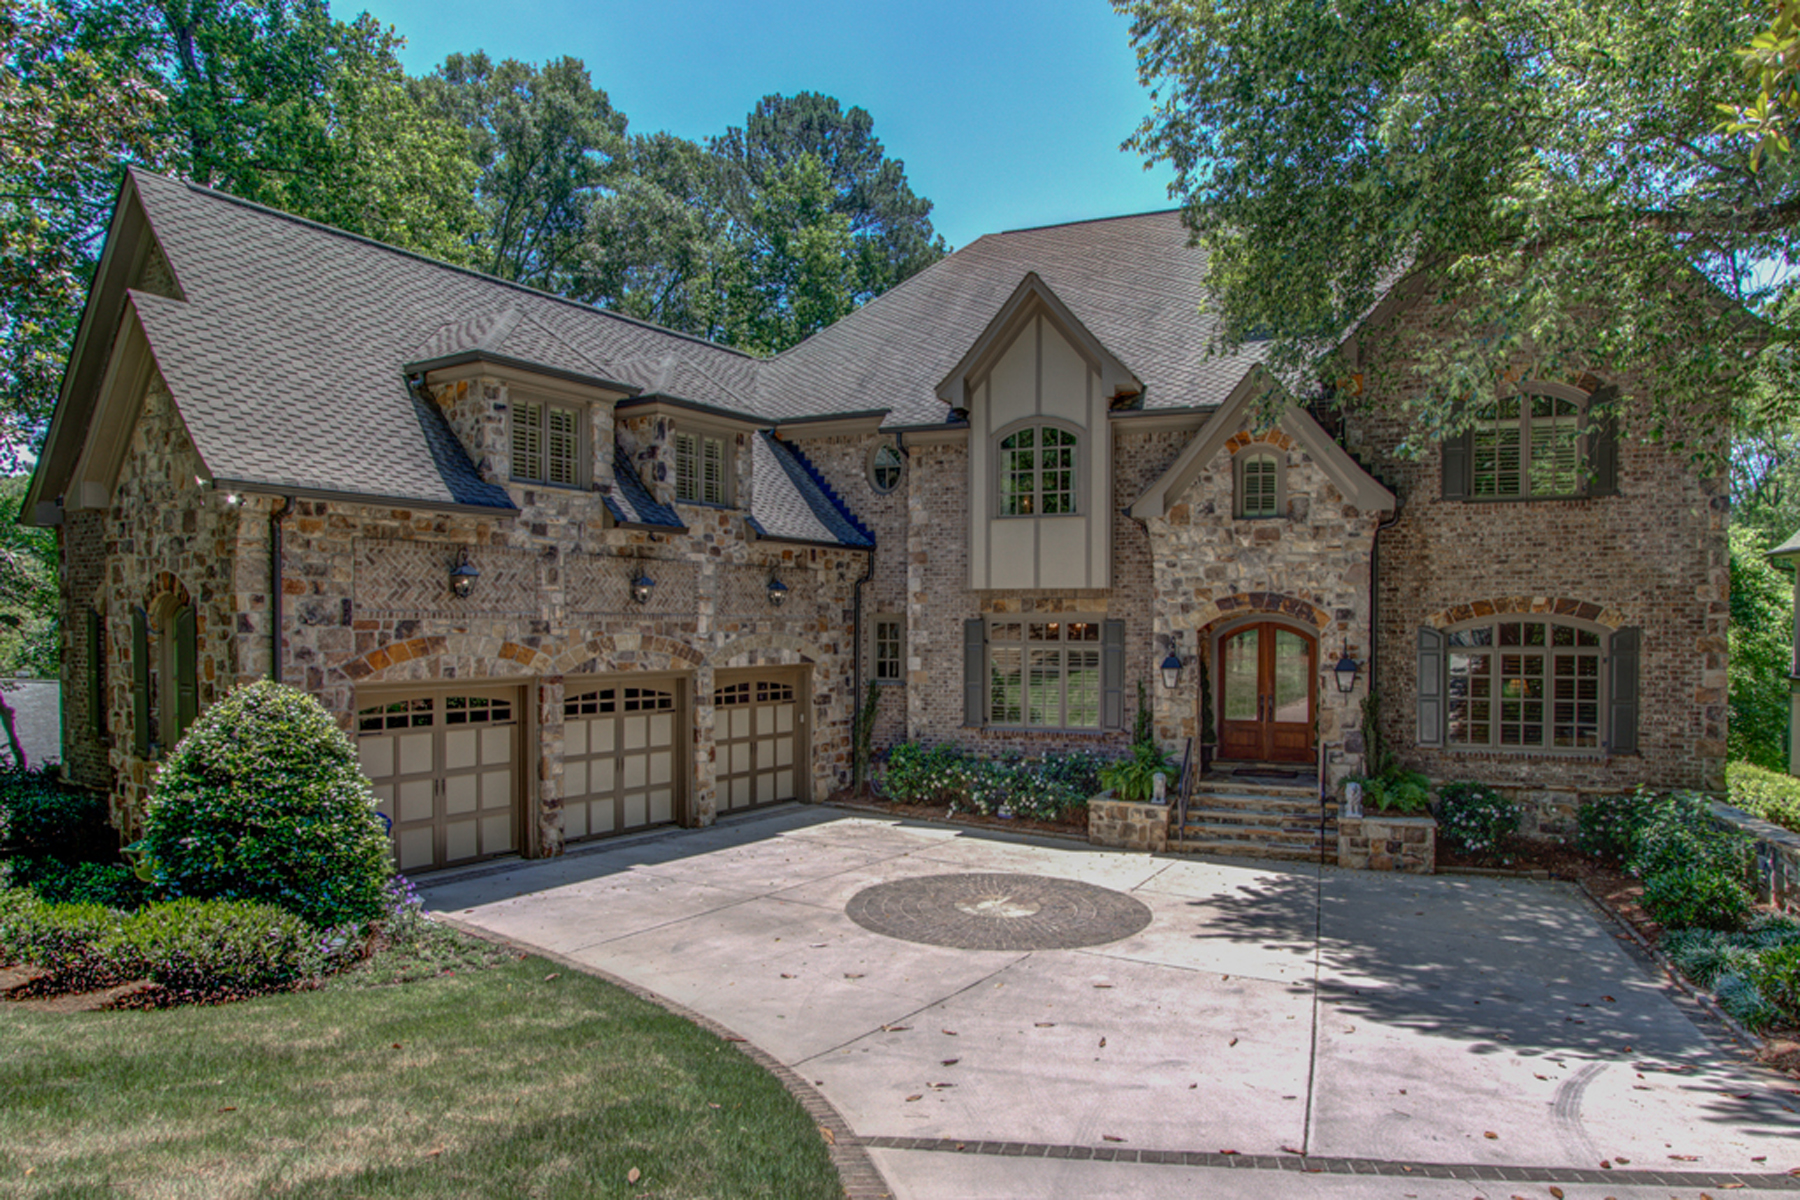 Single Family Home for Active at Gorgeous Home In Chastain Park On Almost An Acre 362 Hillside Drive NW Atlanta, Georgia 30342 United States